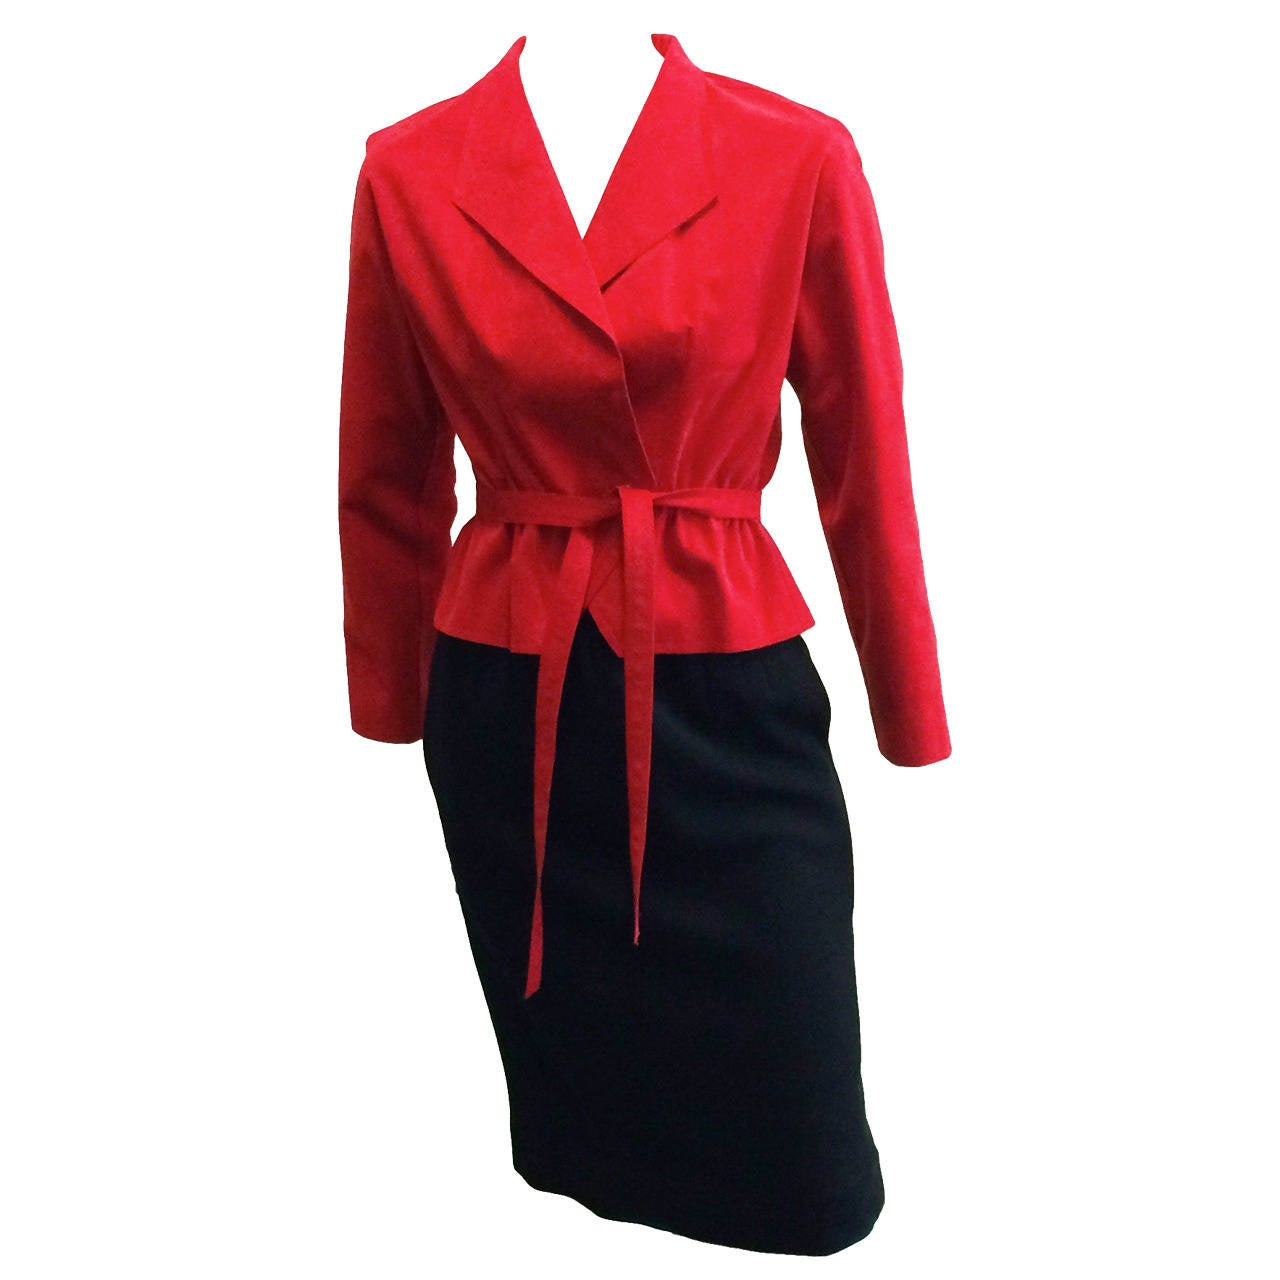 Halston 1970s Ultra Suede Red Jacket with Black Wool Skirt Size 4. 1